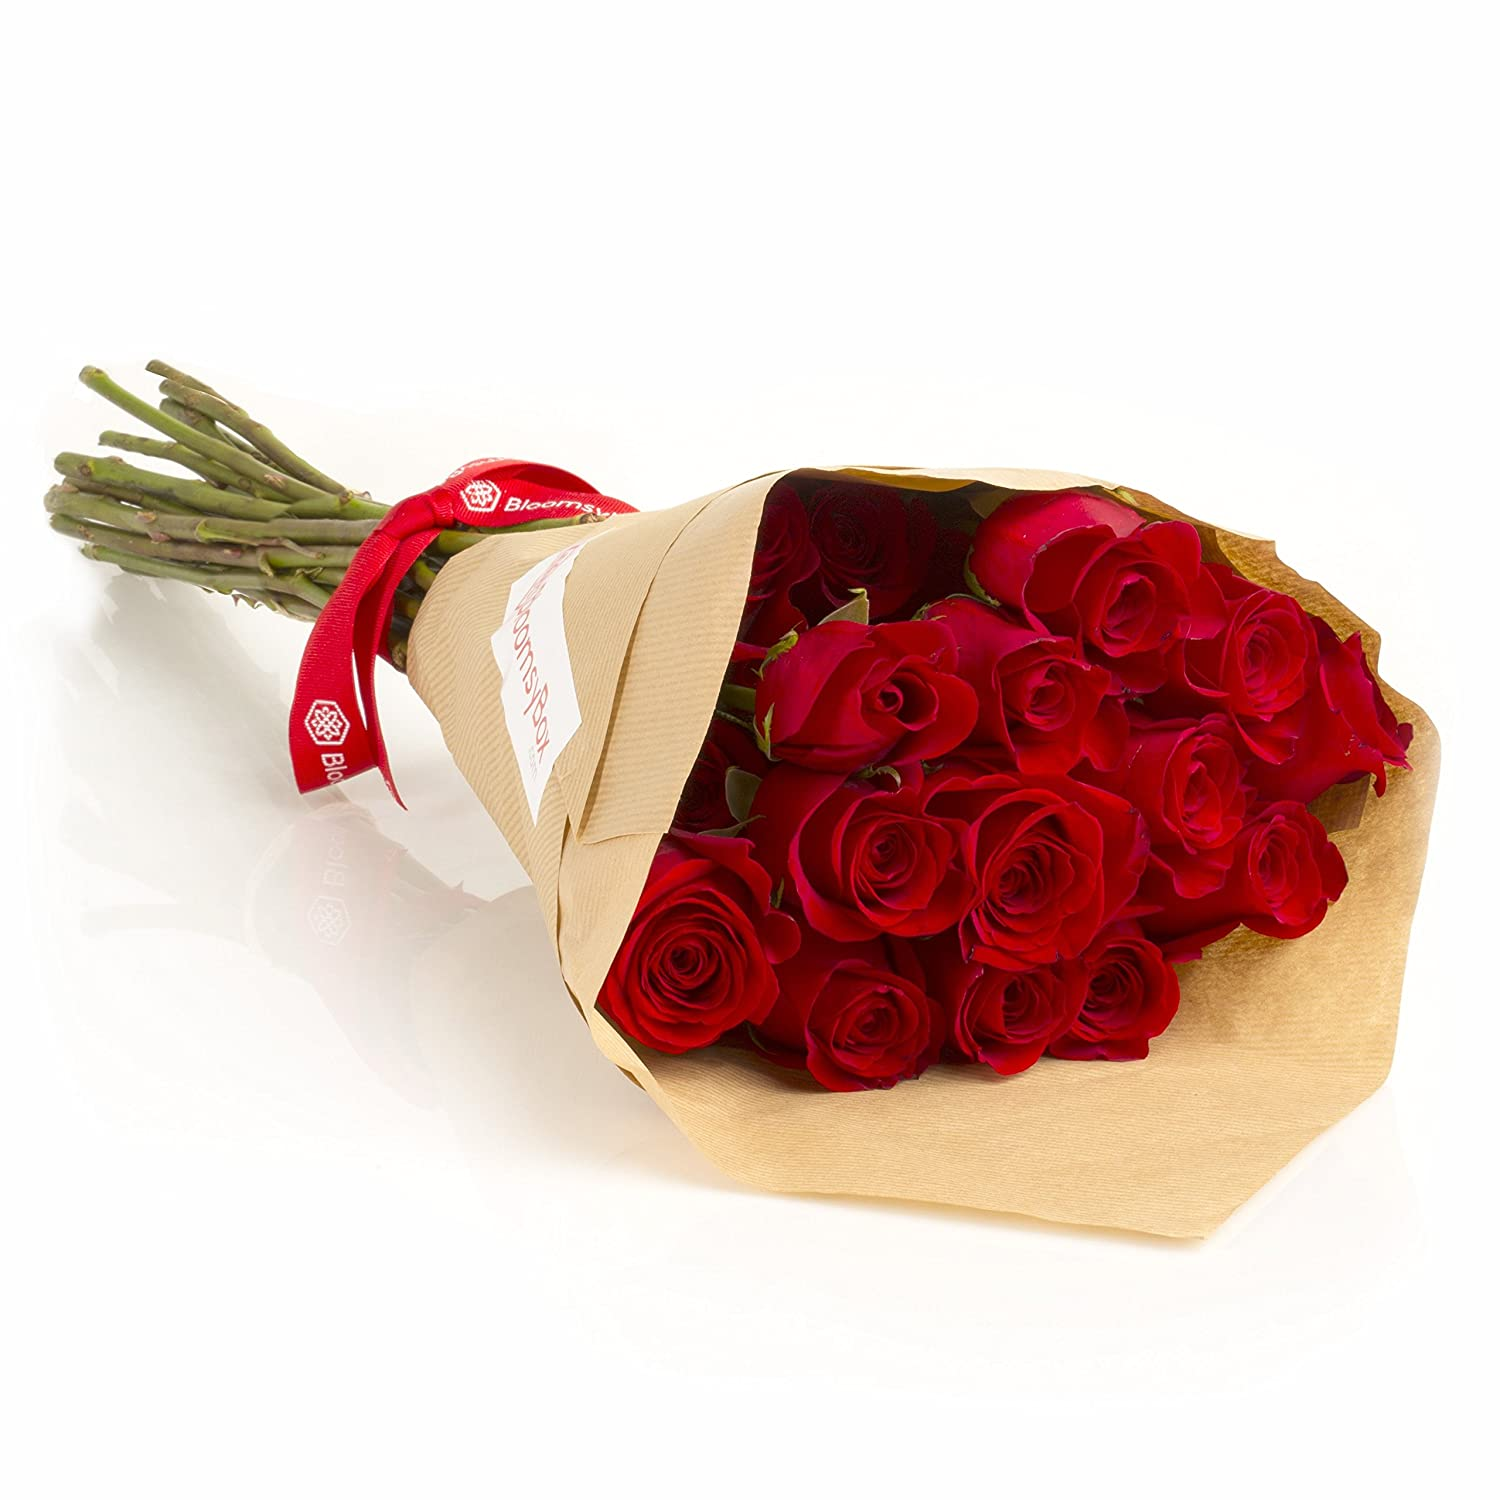 Amazon.com : 24 Long Stem Red Roses Hand-tied Bouquet -No Vase ...